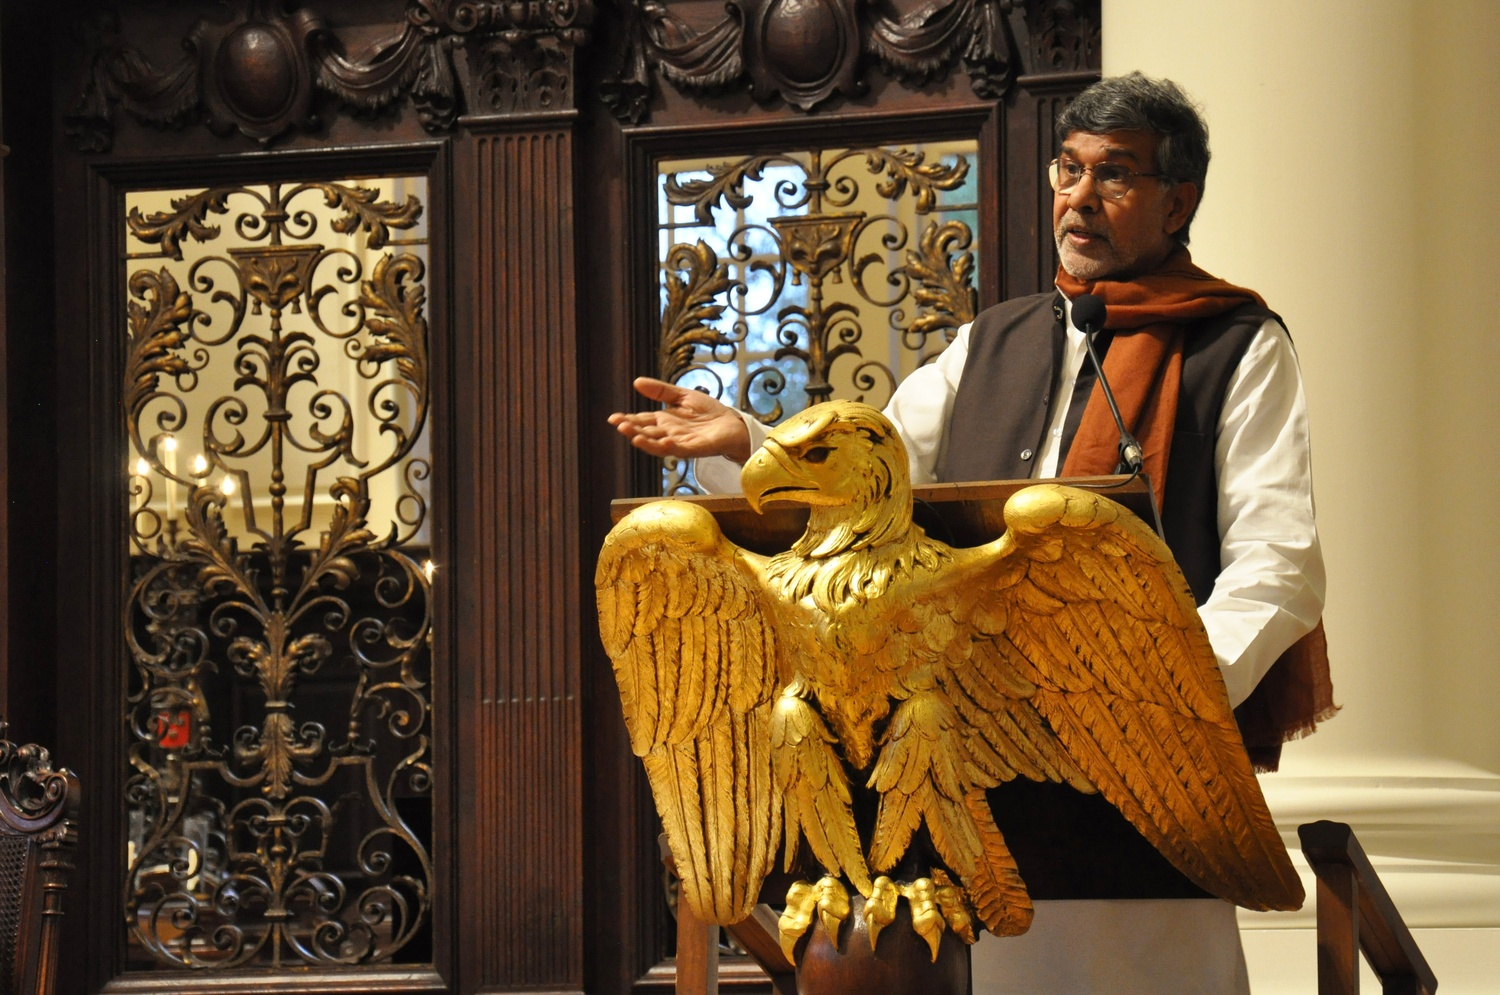 Kailash Satyarthi addresses a crowd in Memorial Church after accepting the 2015 Humanitarian of the Year Award. The Harvard Foundation presented Satyarthi, a 2014 Nobel Peace Prize Laureate, with the award on Friday to honor him for his dedication to protecting children's rights.